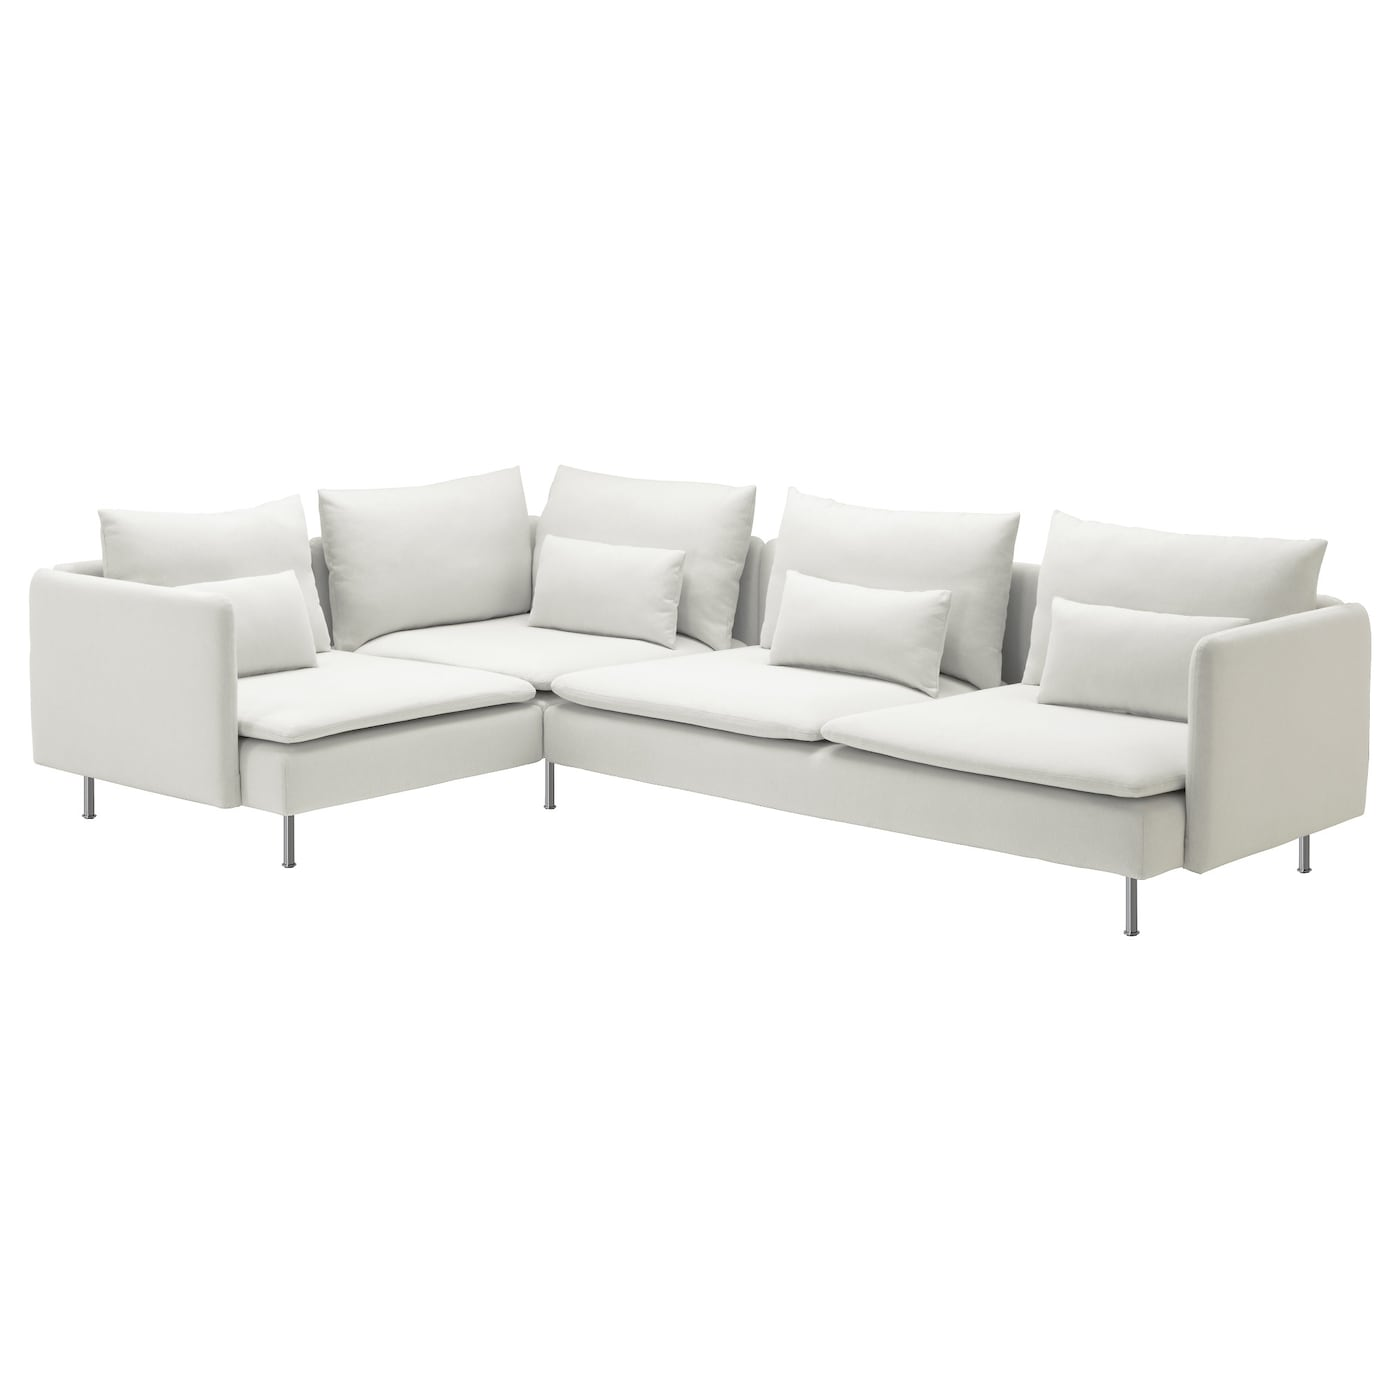 s derhamn corner sofa 2 1 finnsta white 291x198 cm ikea. Black Bedroom Furniture Sets. Home Design Ideas